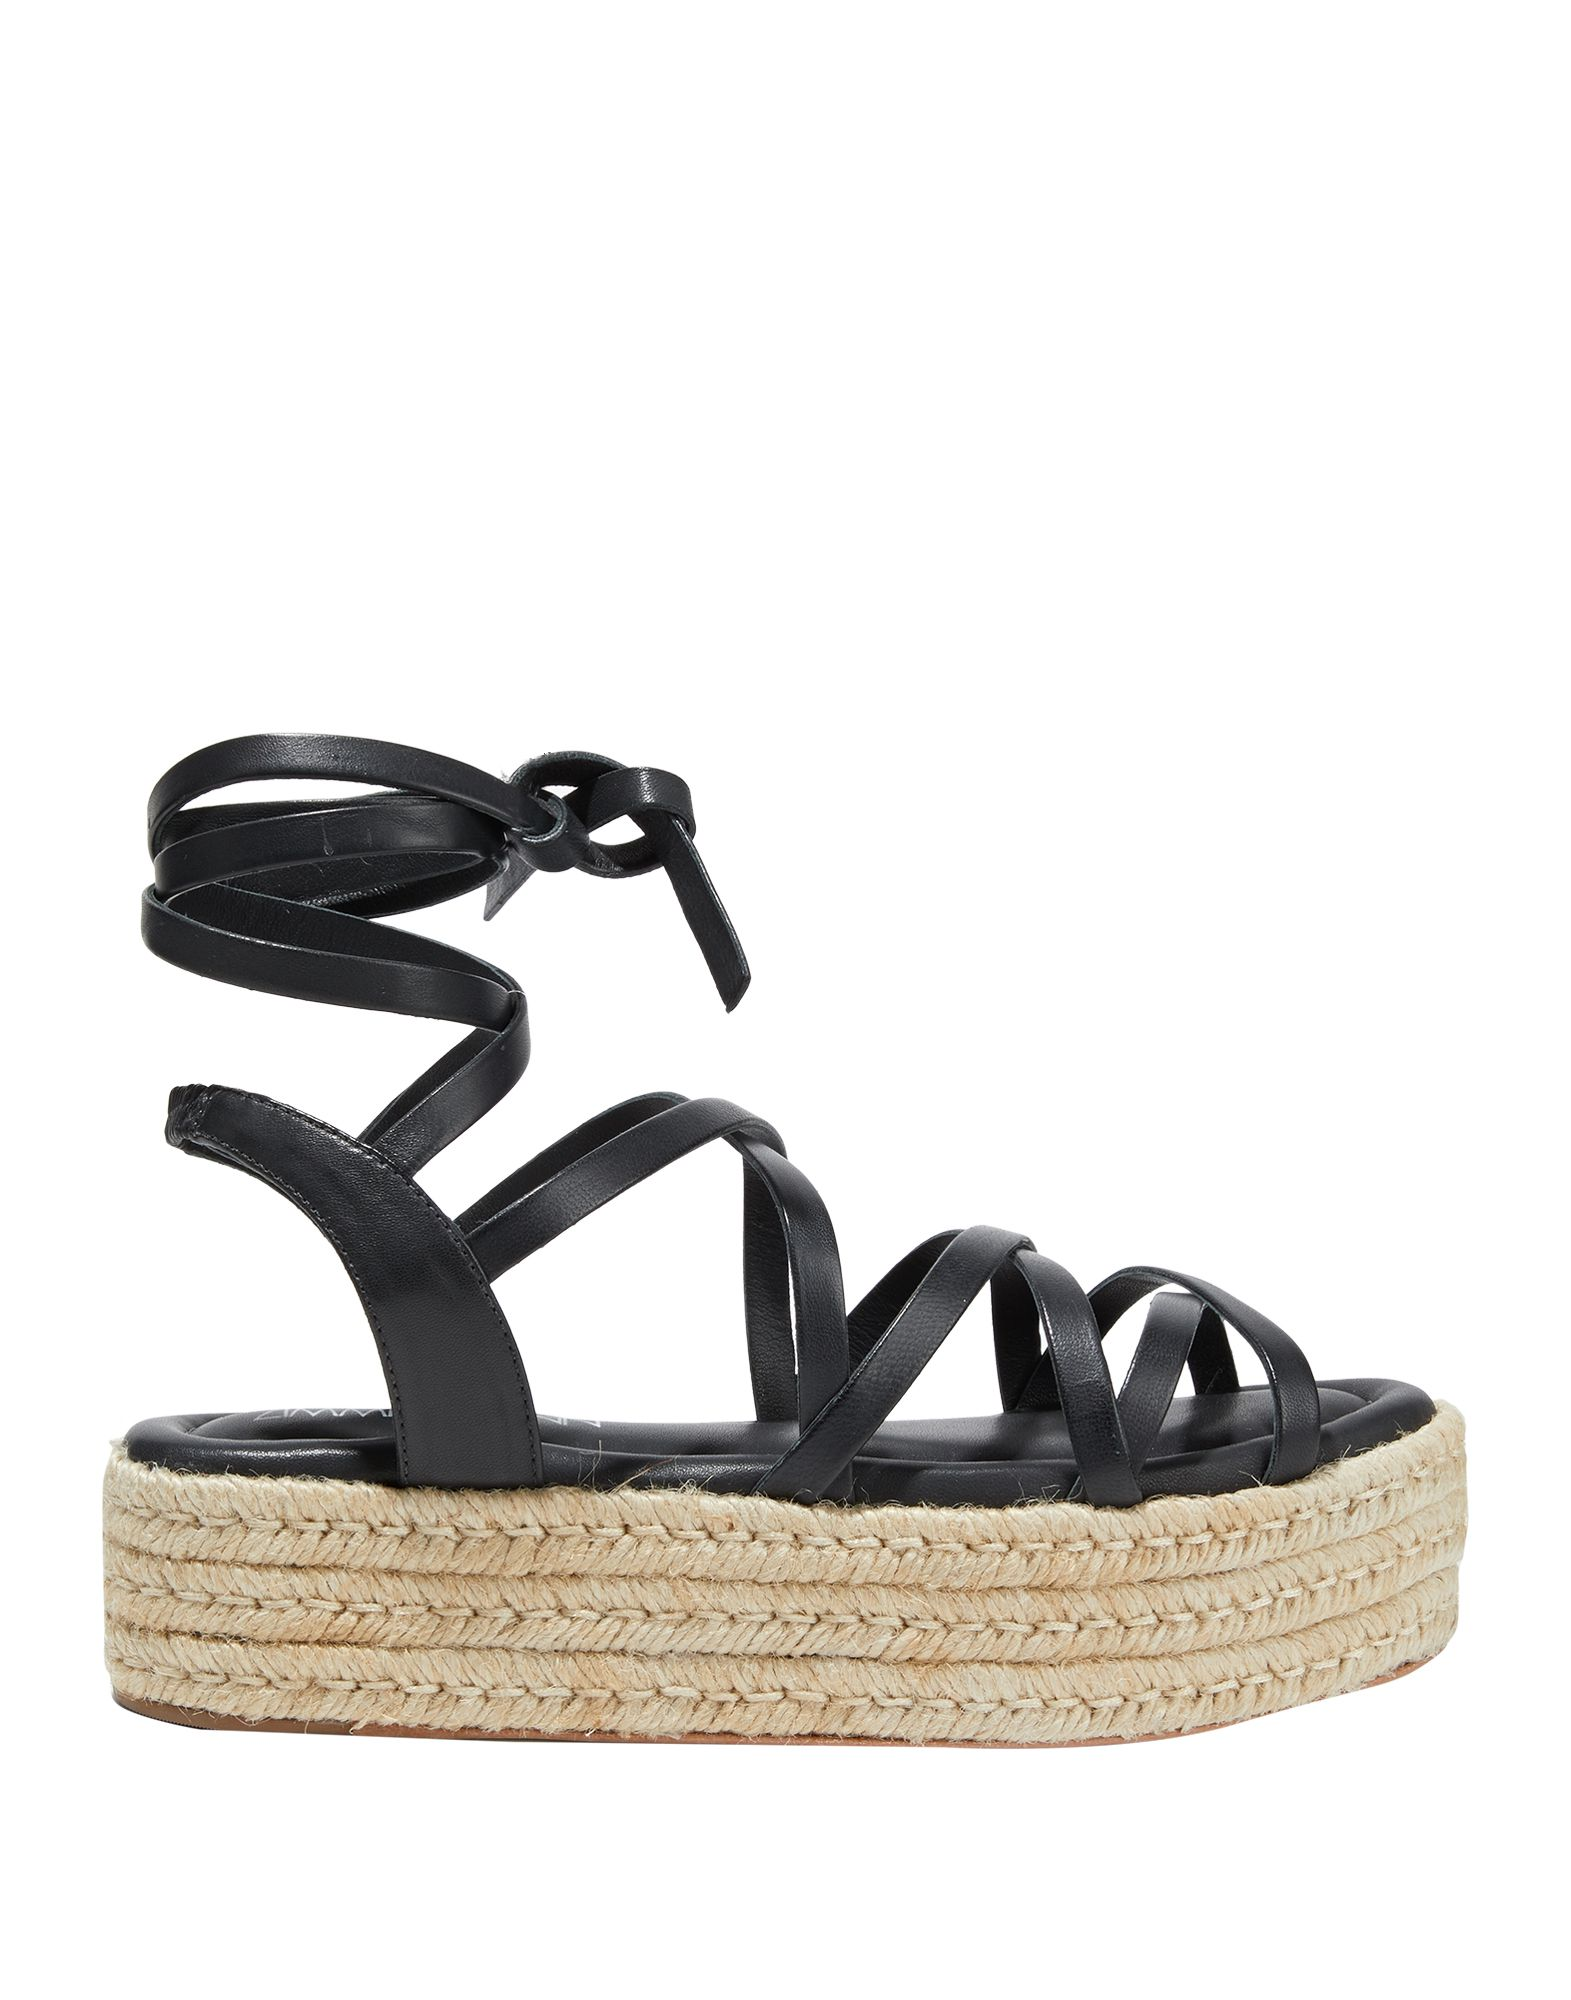 ZIMMERMANN Espadrilles. no appliqués, solid color, wrapping straps closure, round toeline, flatform, rope wedge, leather lining, leather/rubber sole, contains non-textile parts of animal origin. Soft Leather